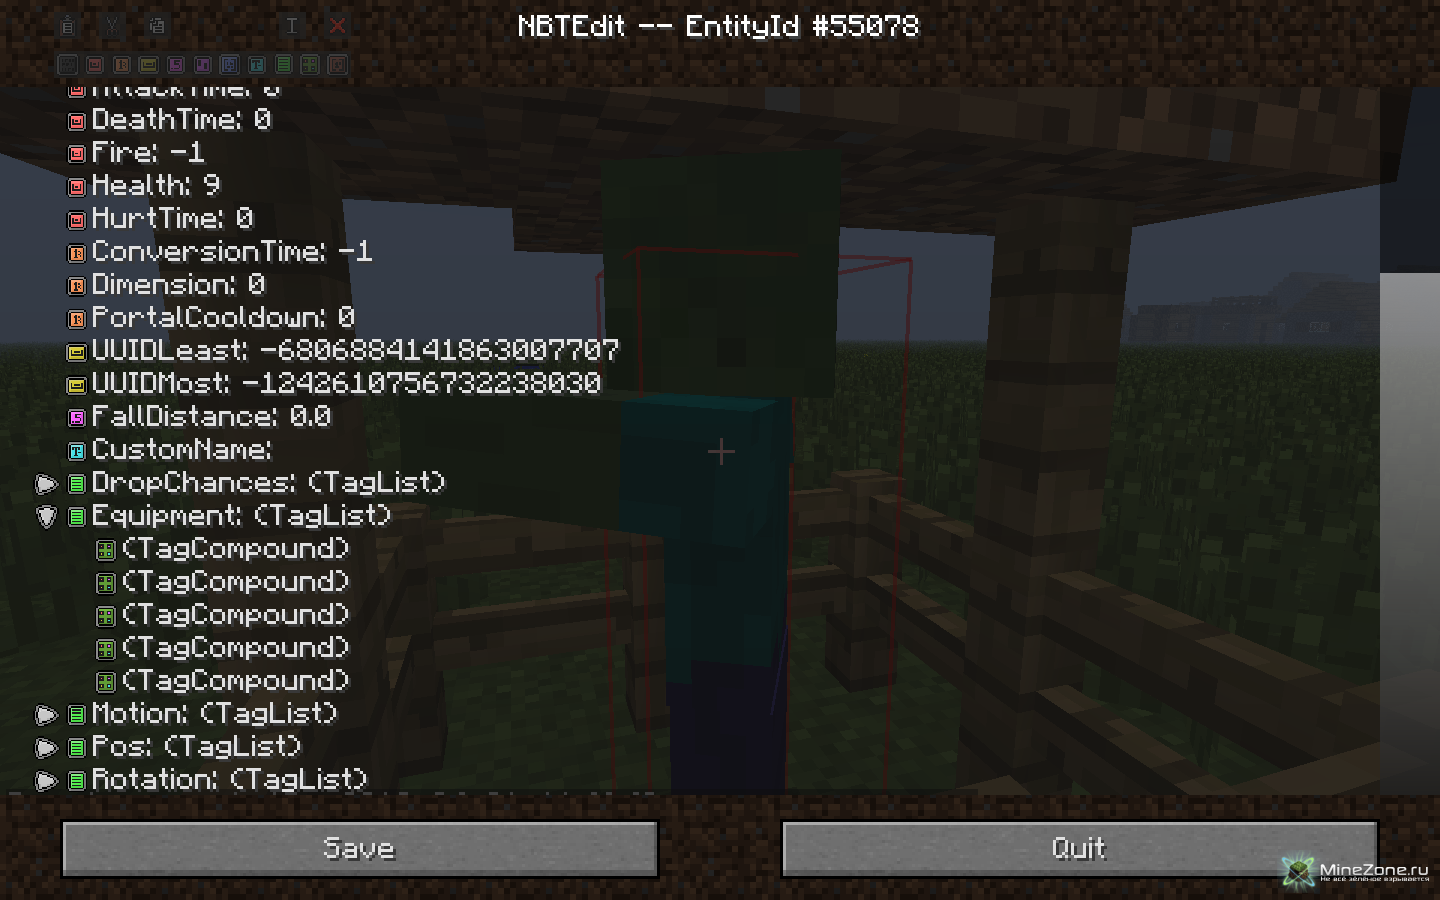 1 5 1 Forge In-game NBTedit - Minecraft Inventory editor